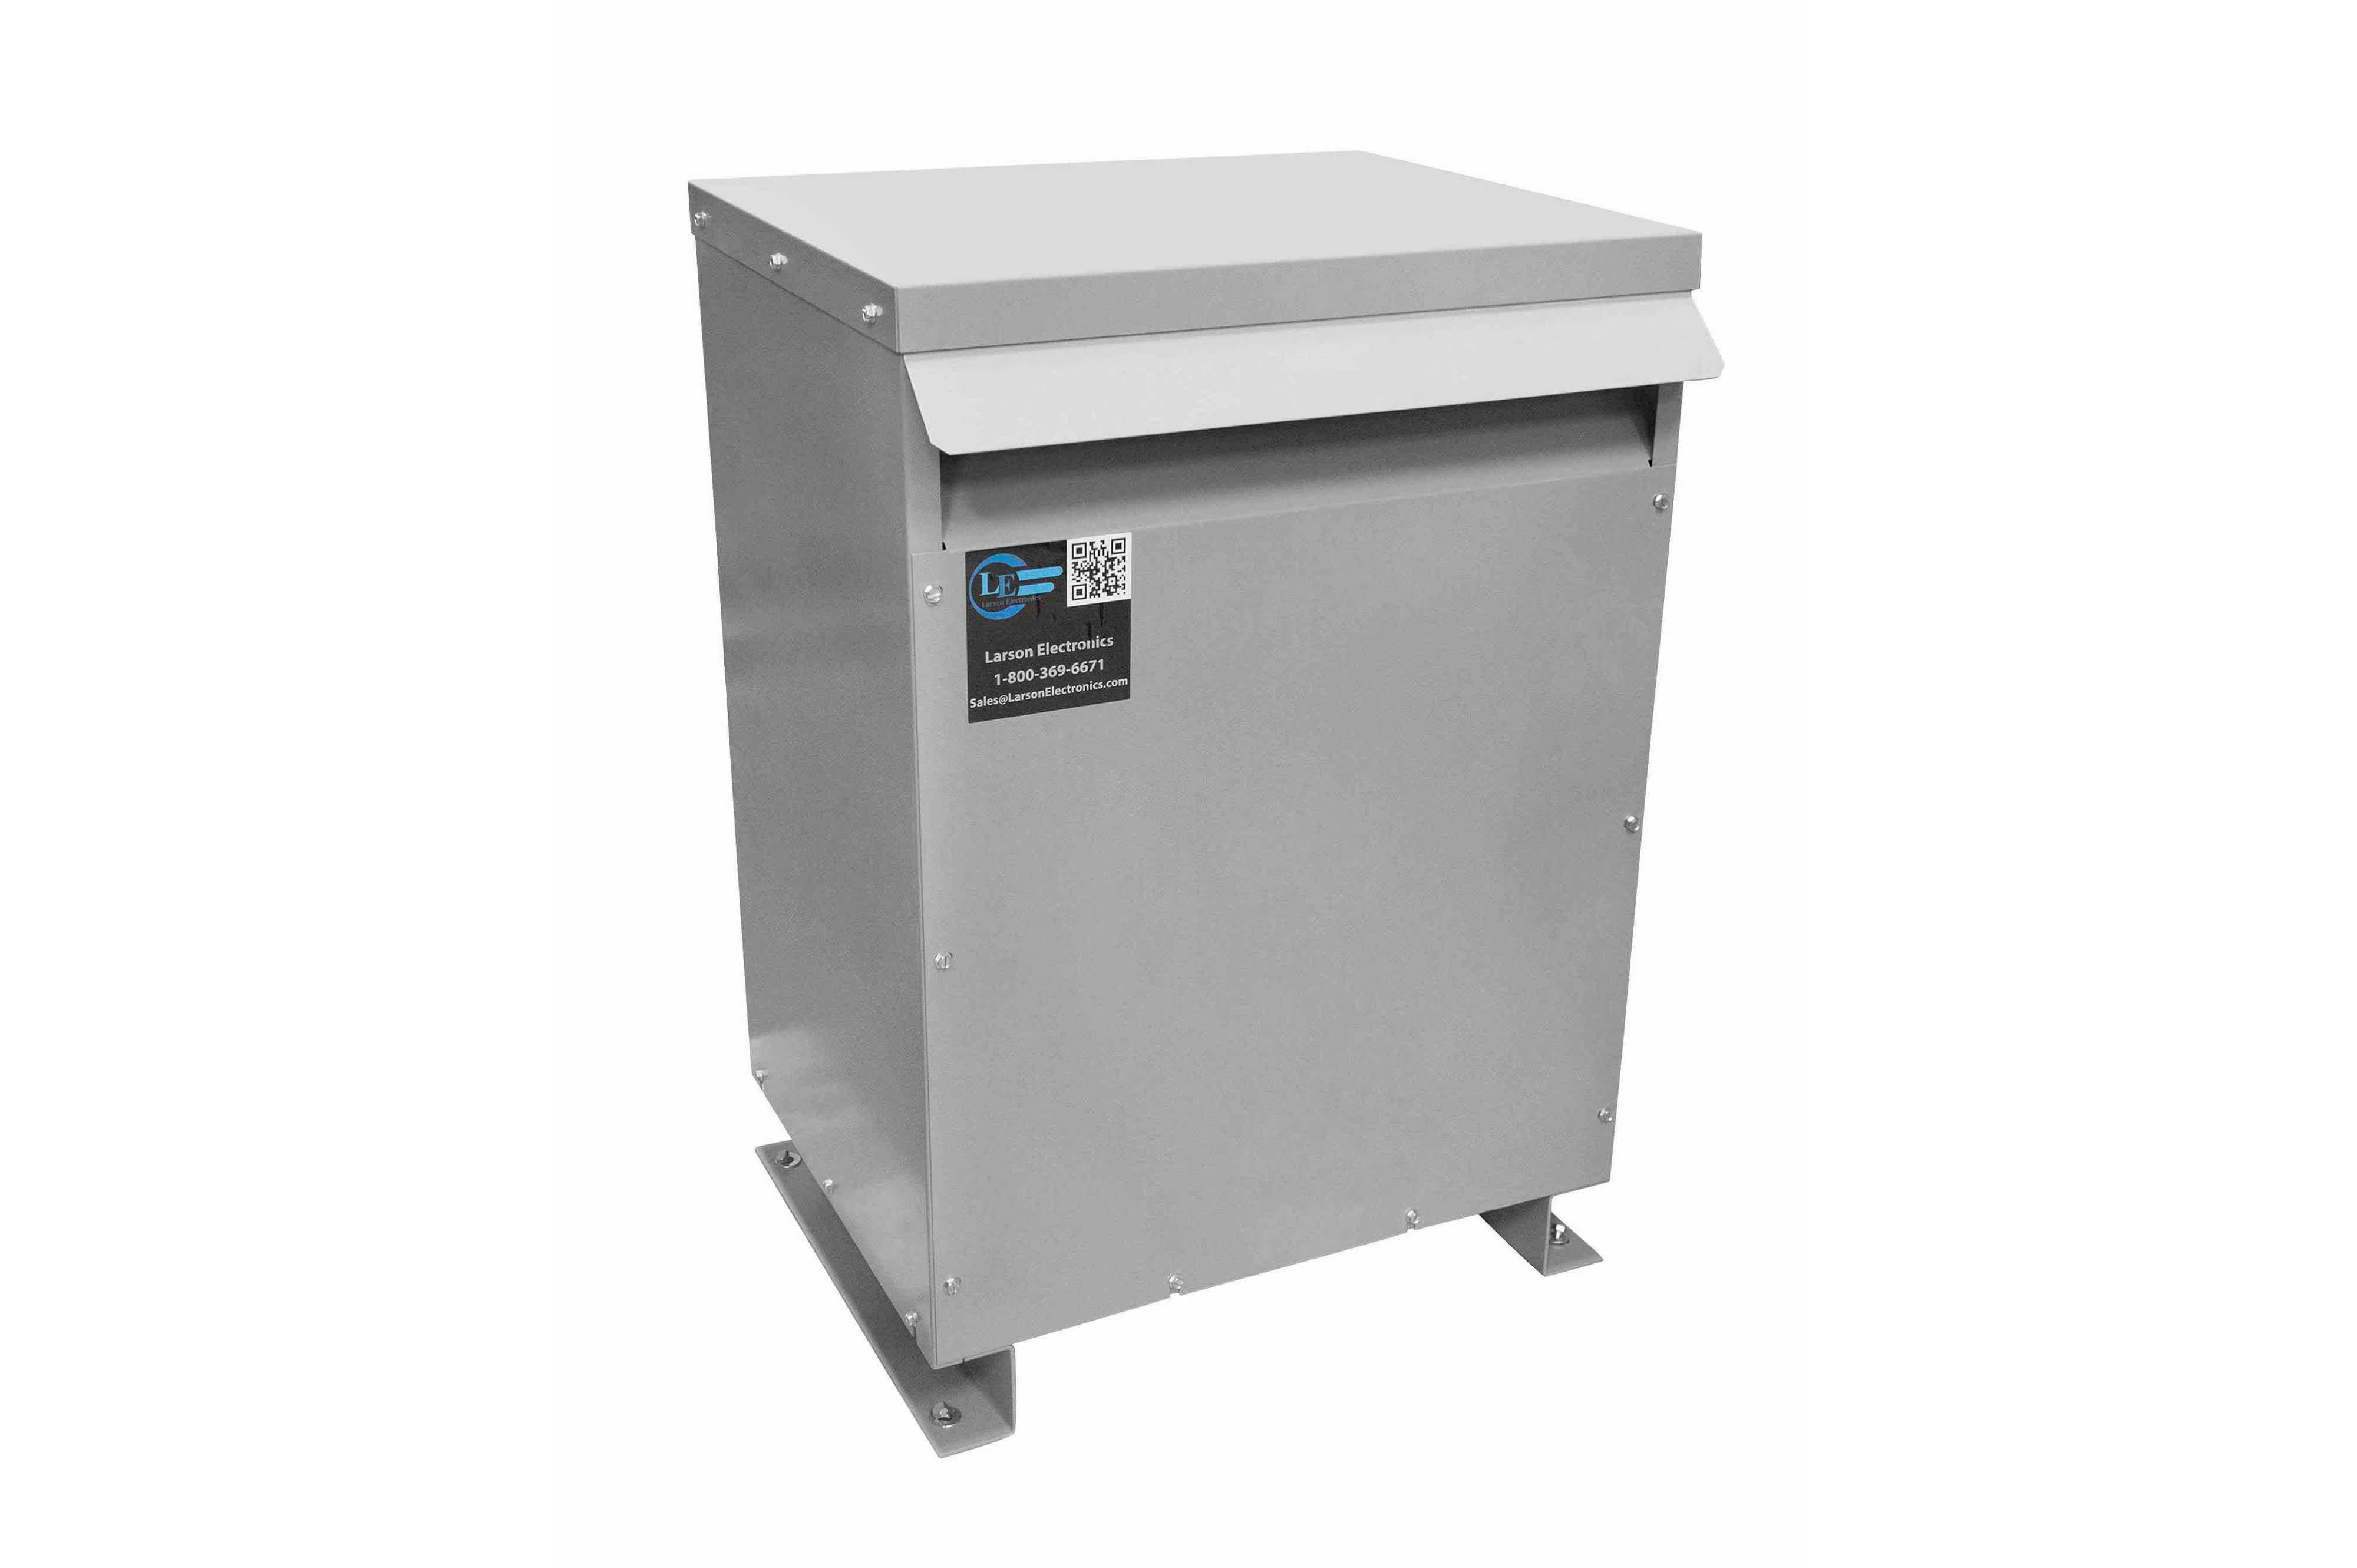 400 kVA 3PH DOE Transformer, 240V Delta Primary, 400Y/231 Wye-N Secondary, N3R, Ventilated, 60 Hz